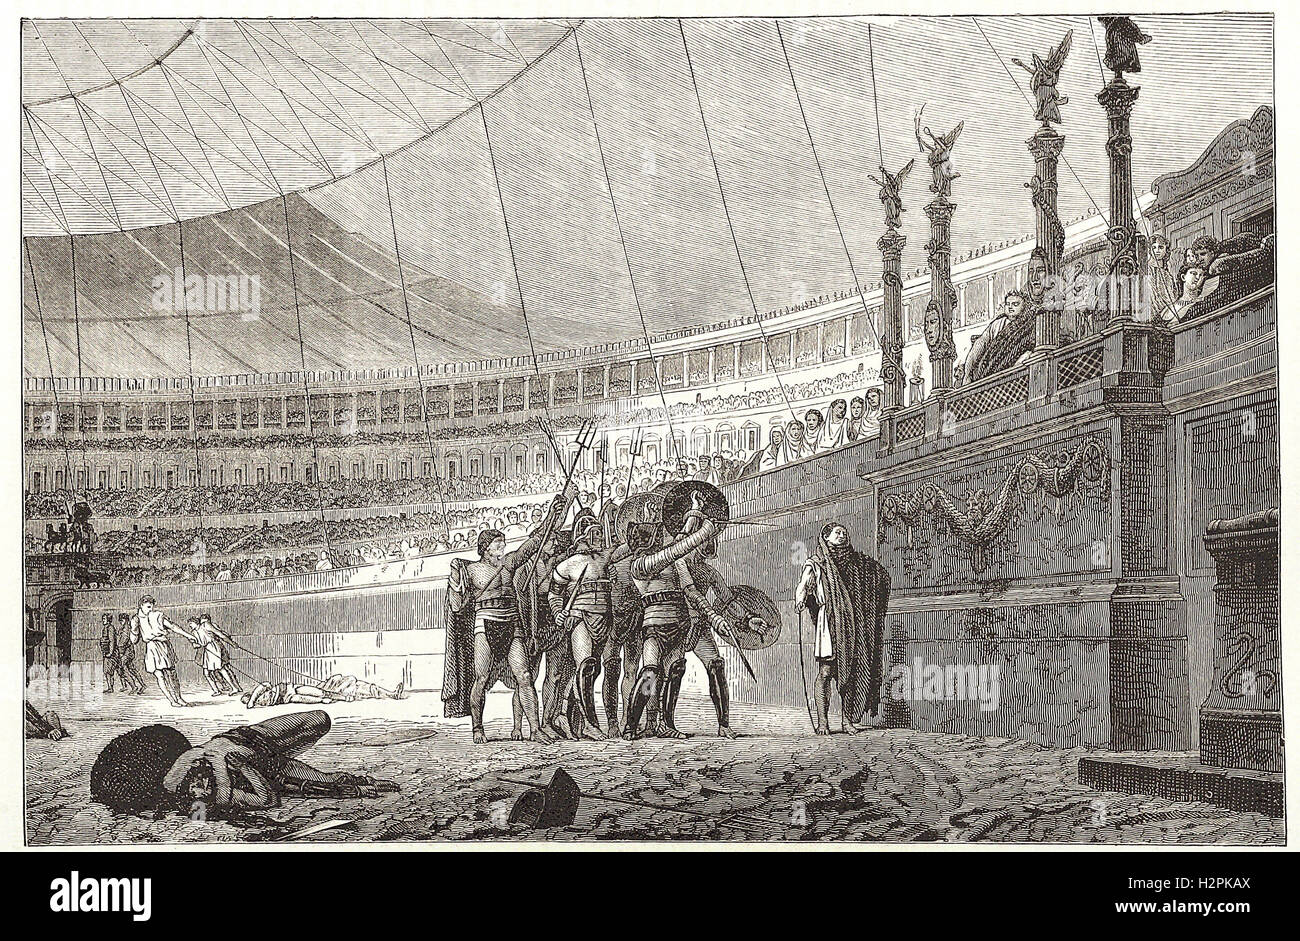 GLADIATORS SALUTING THE EMPEROR BEFORE JOINING COMBAT.- from 'Cassell's Illustrated Universal History' - Stock Image